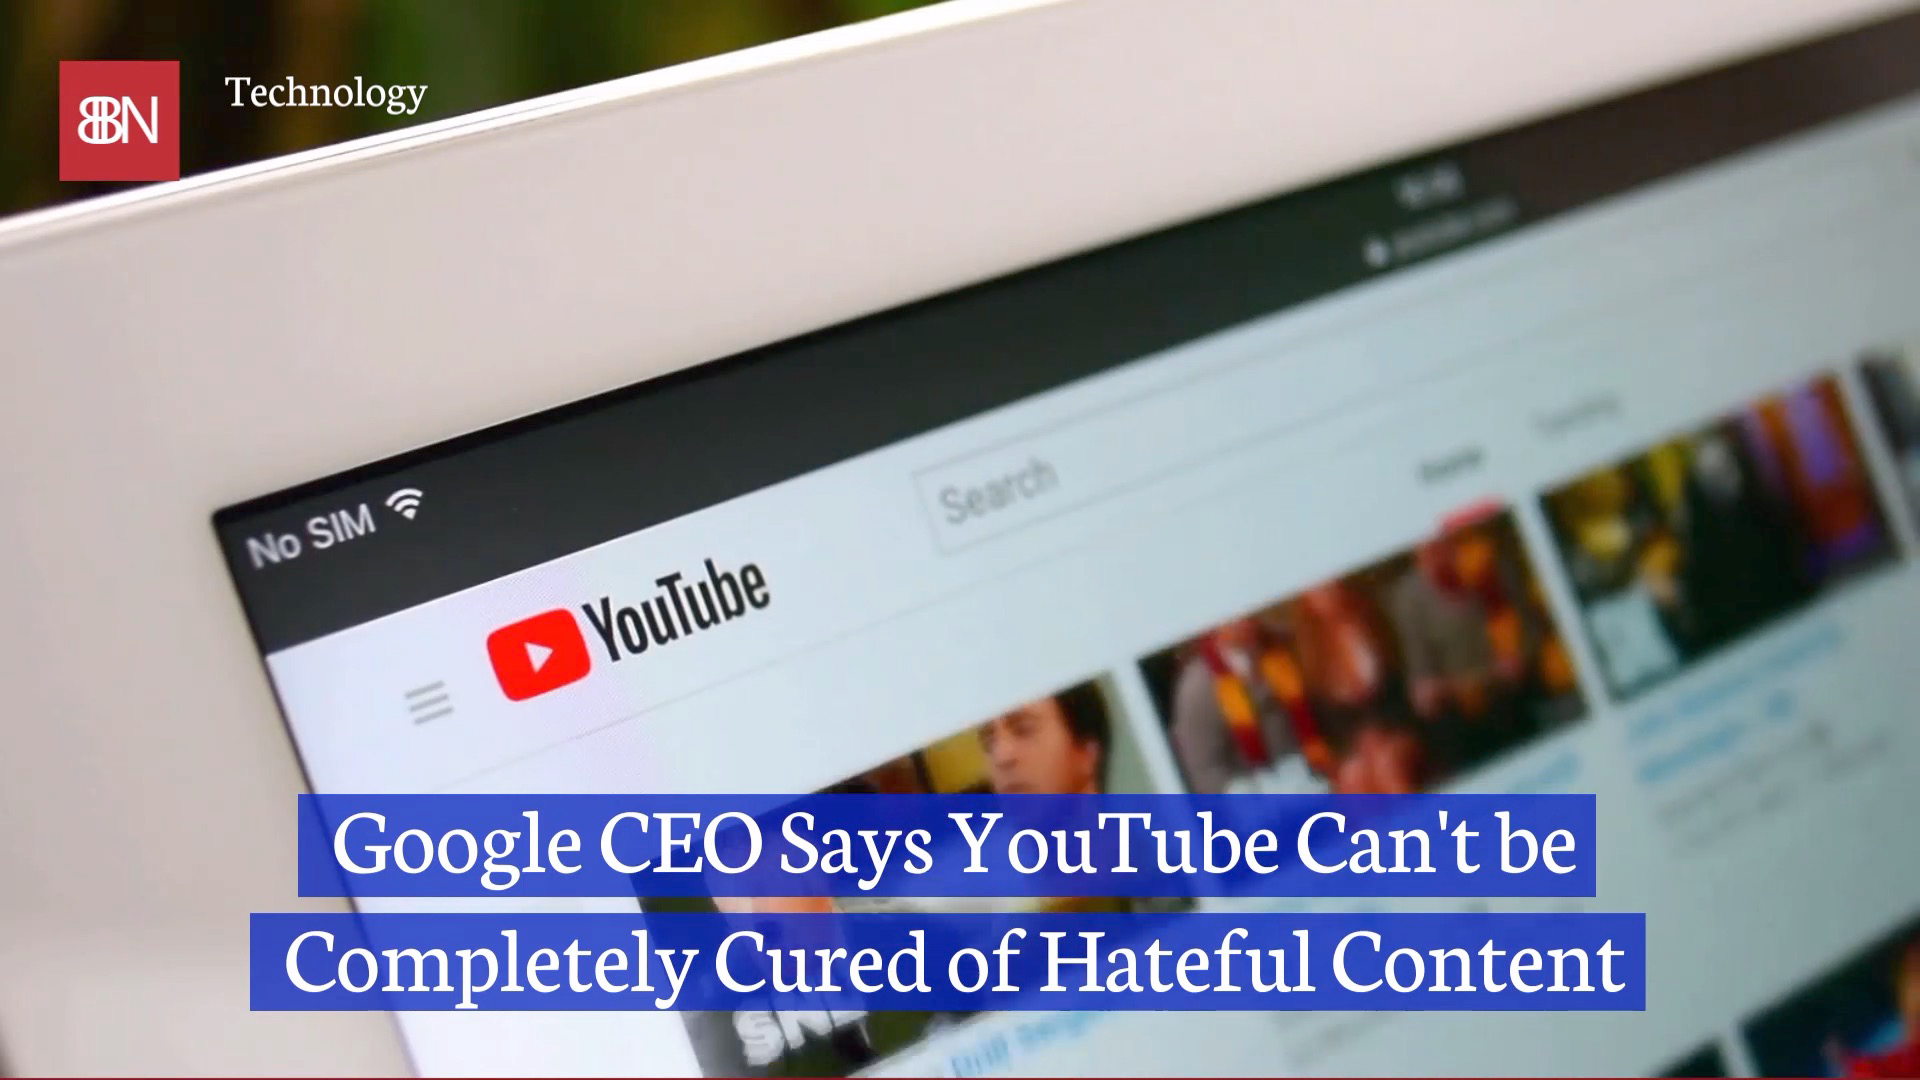 YouTube Will Always Have Hate Related Content